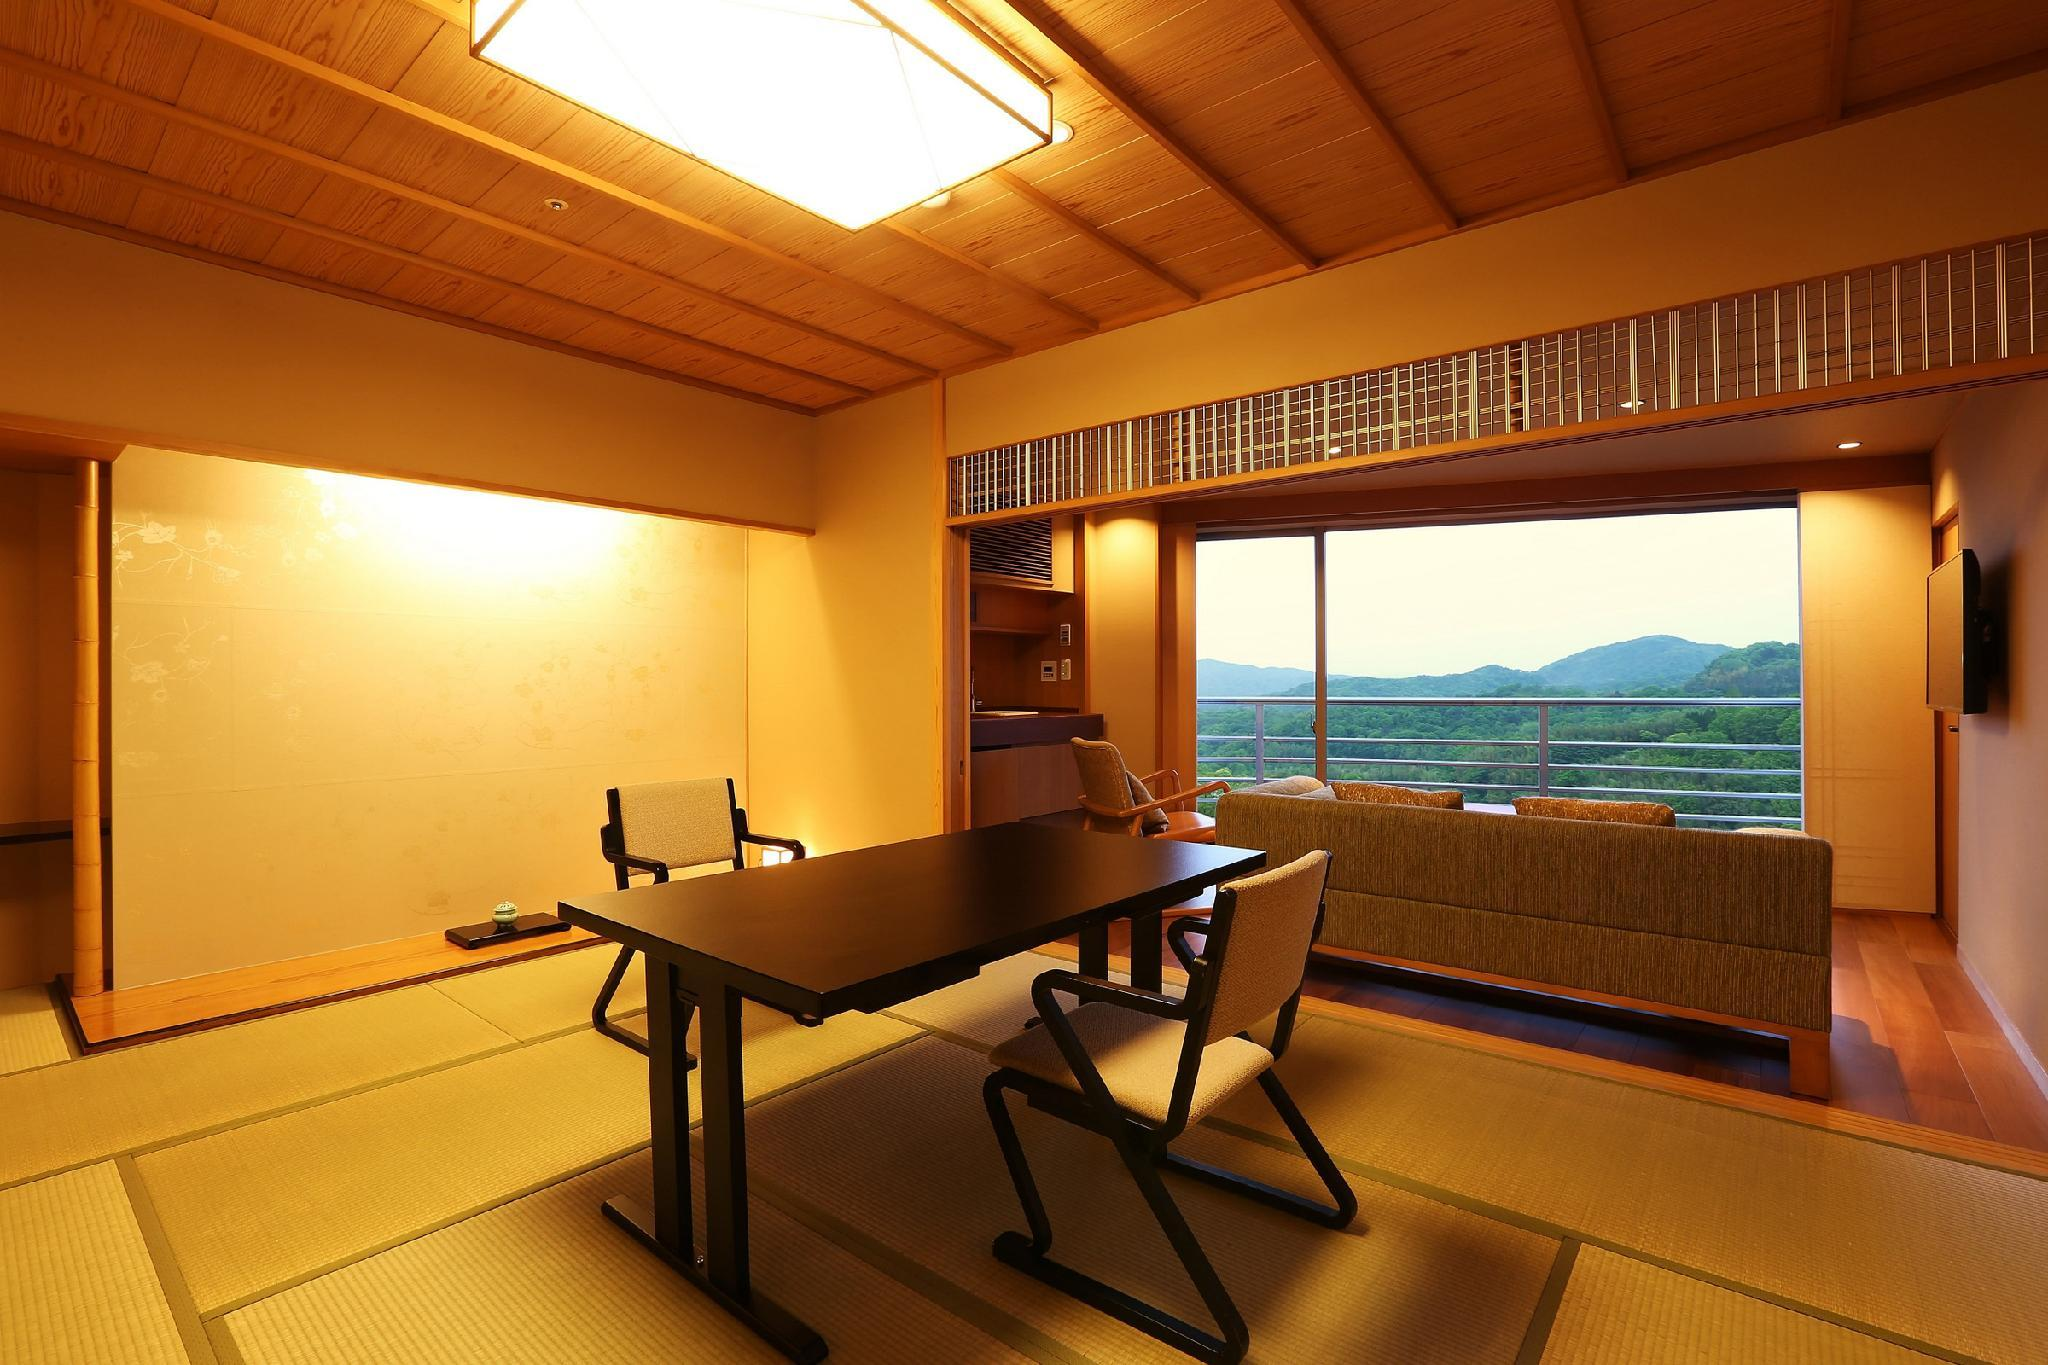 【全新裝修】和洋室客房 - 可住5人/包神戶牛晚餐 (Japanese Western Style Room for 5 People - Kobe Beef Dinner Included, Newly Renovated)